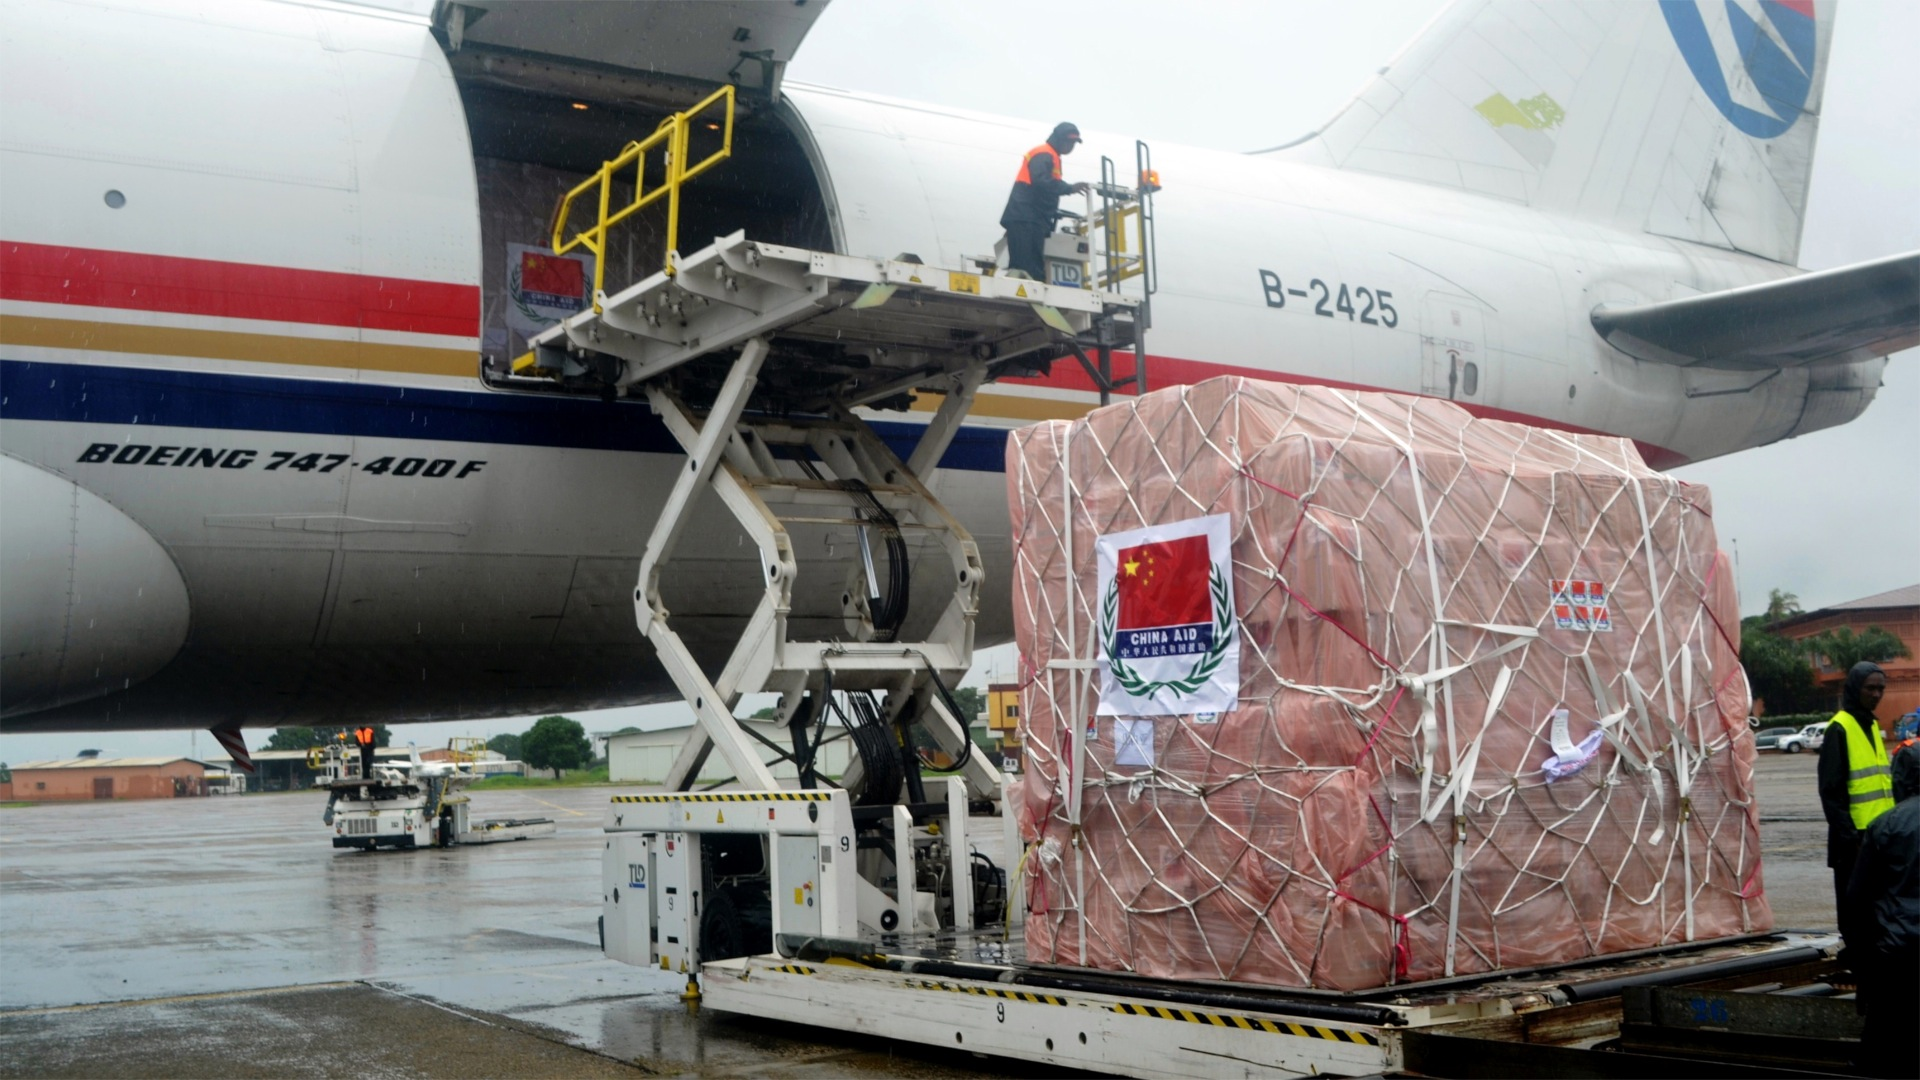 This is what U.S. troops will face in Ebola-ravaged Liberia